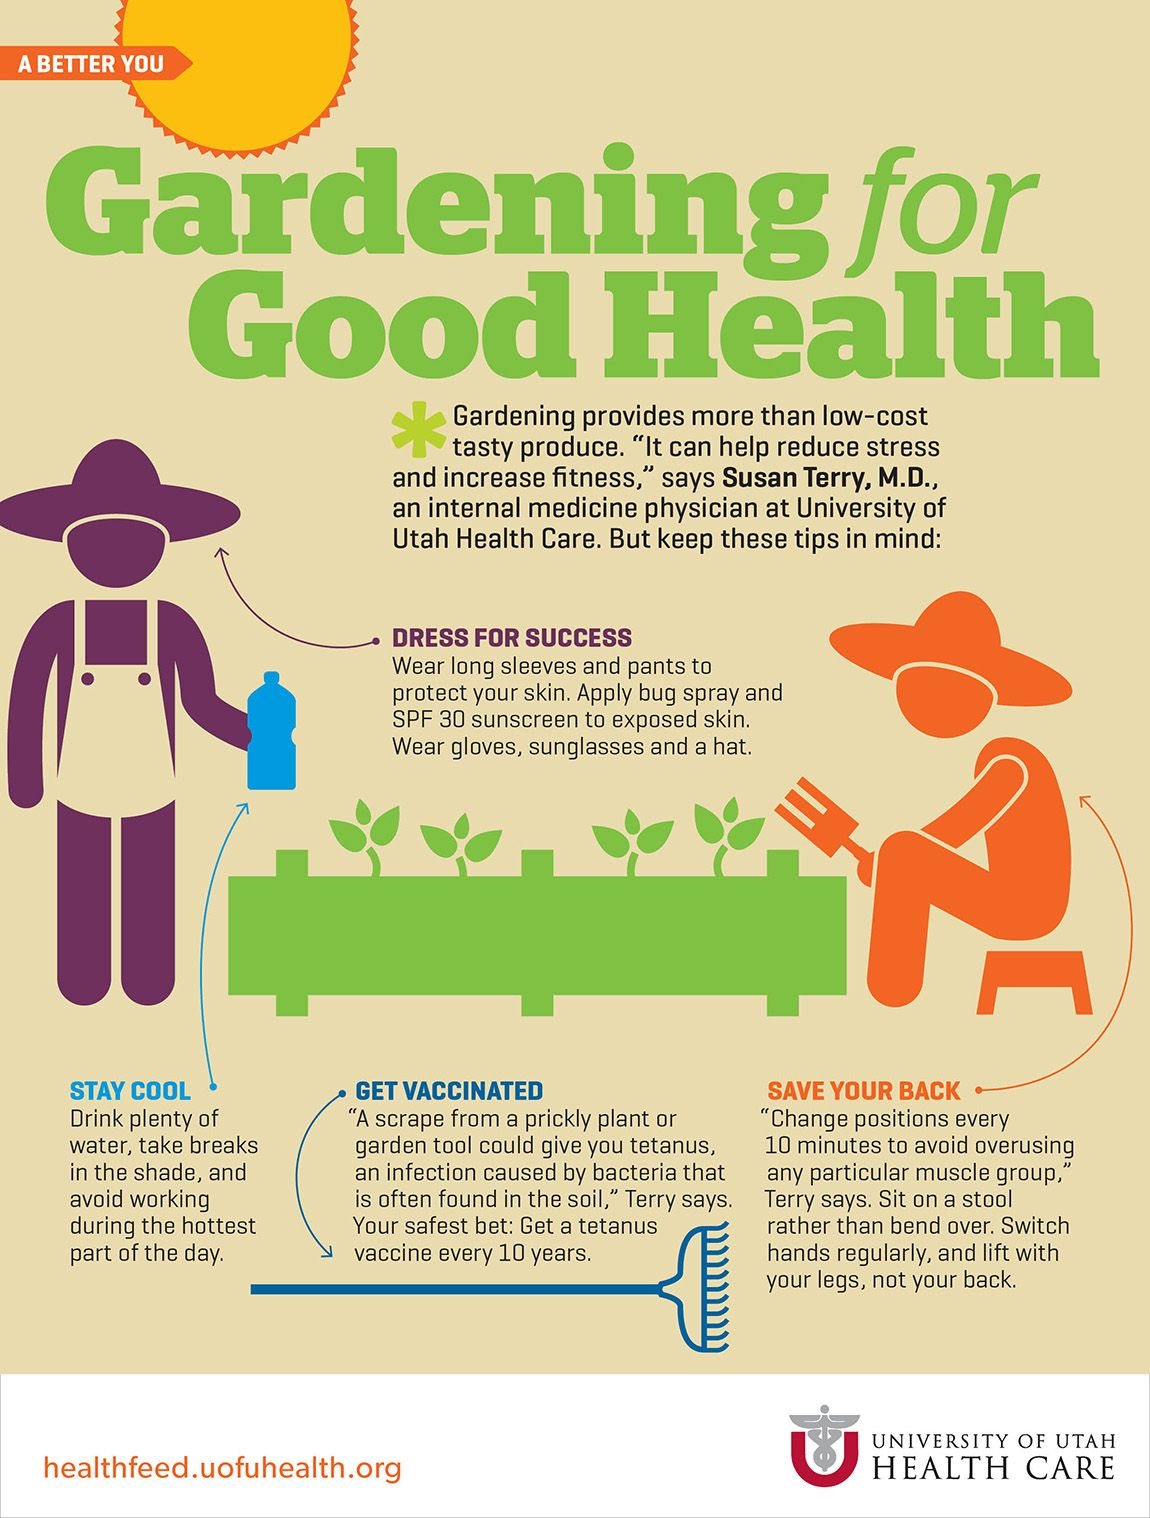 Gardening for good health health and fitness tips